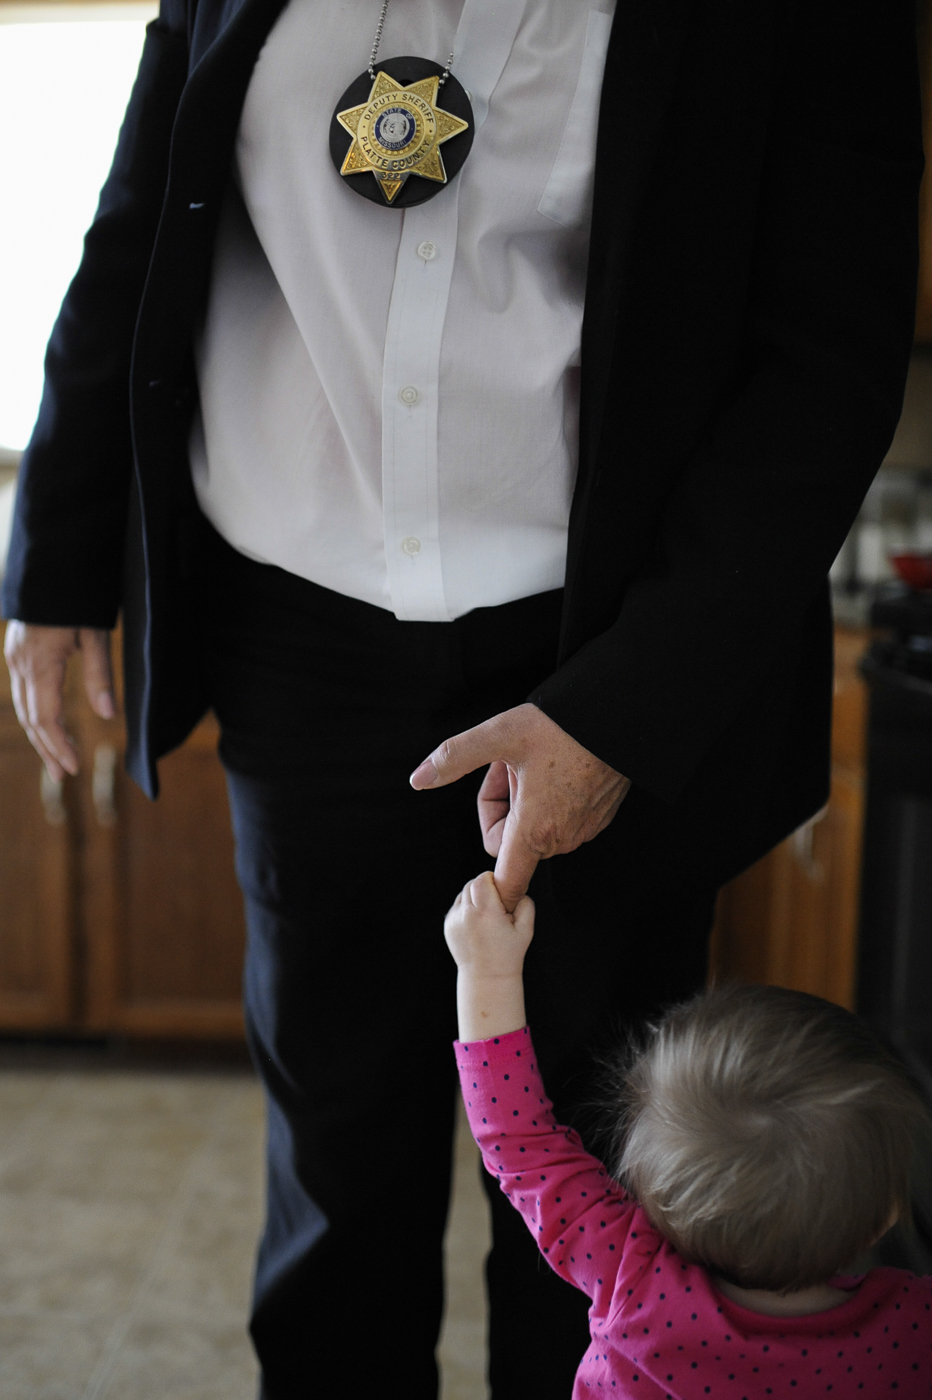 With so much time spent at work, Detective Penrod relishes the moments she can spend at home with her grandchildren.